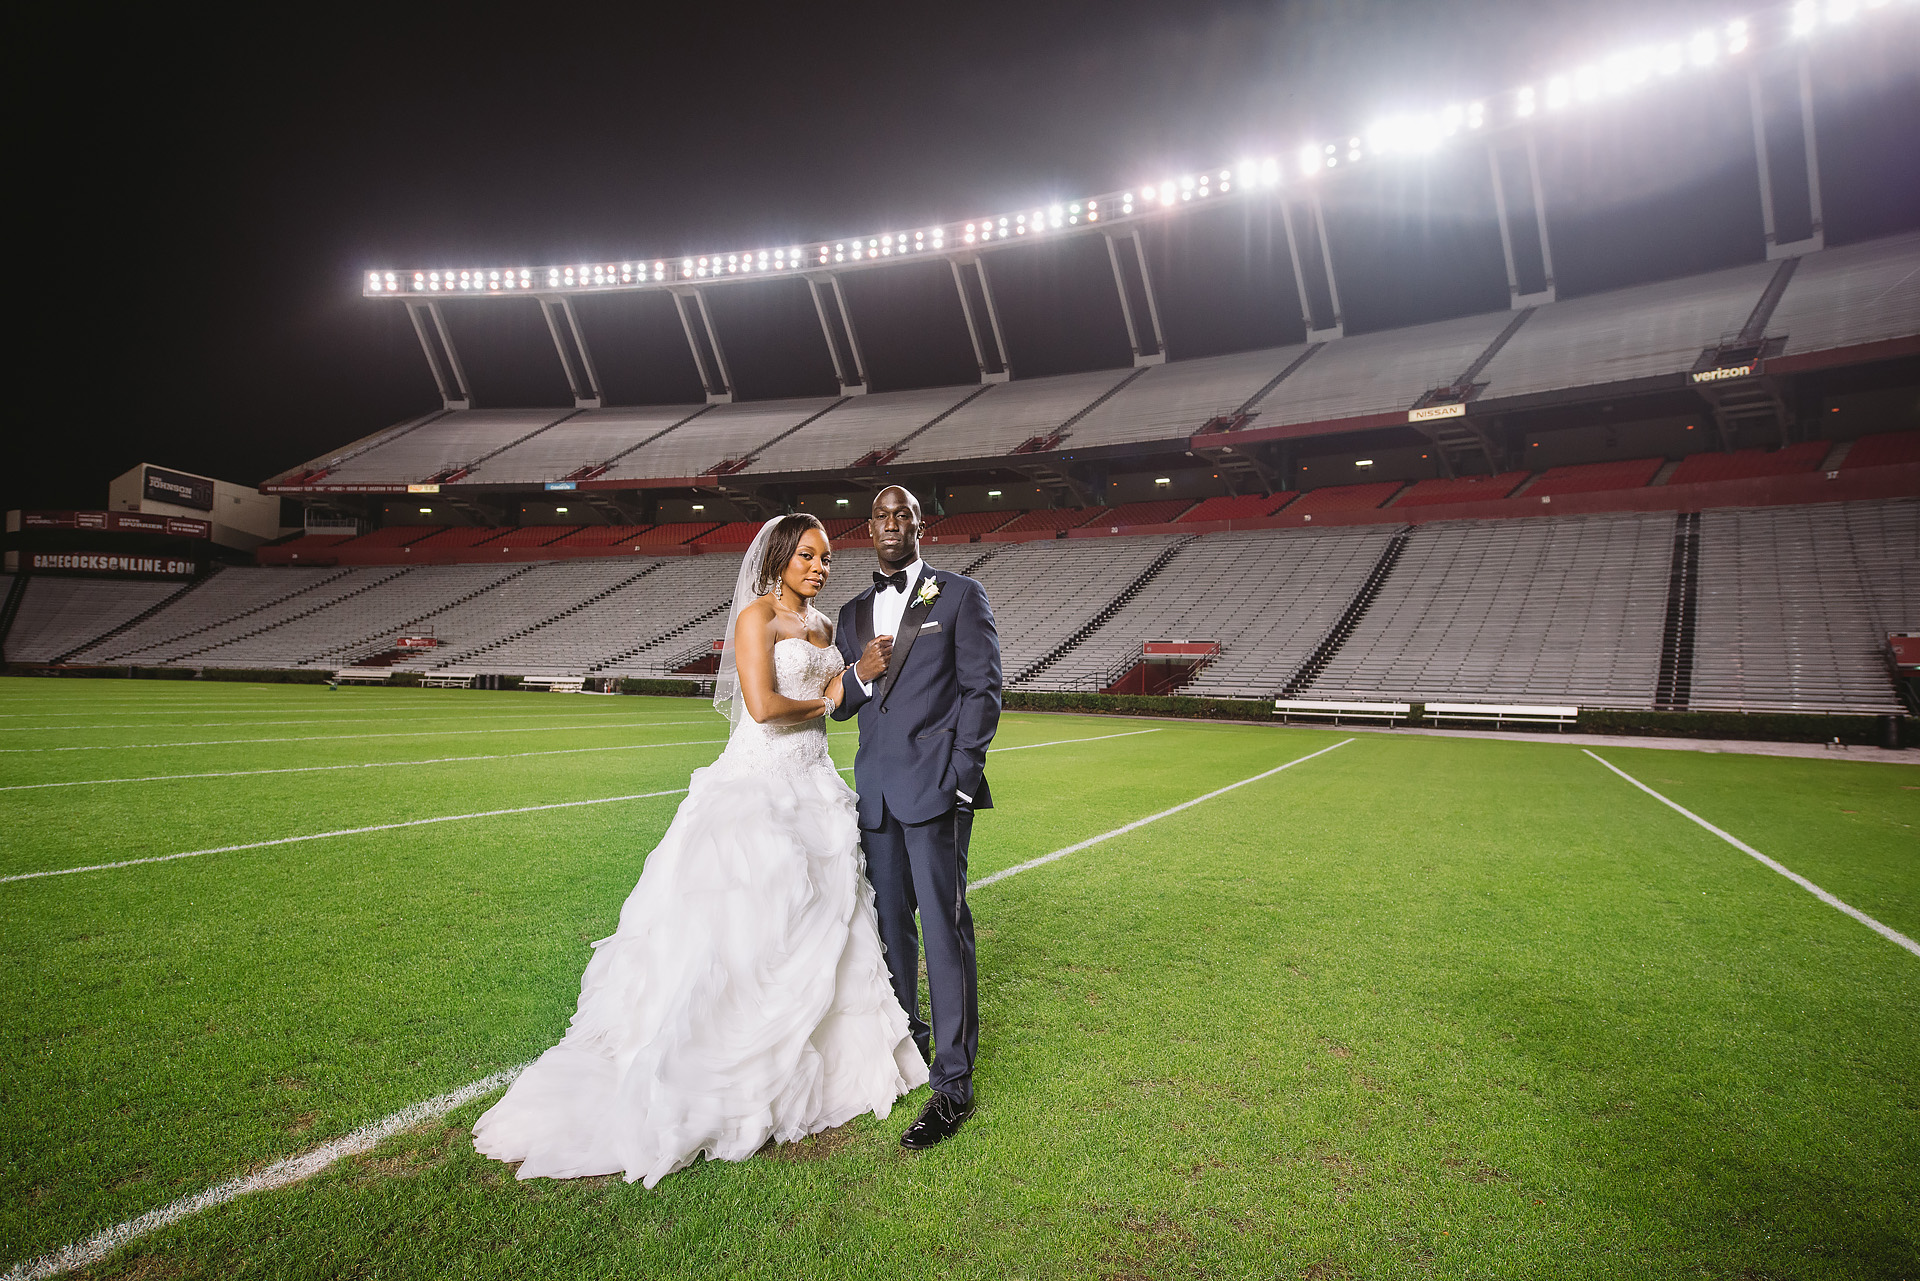 natalie-willis-williams-brice-stadium-wedding